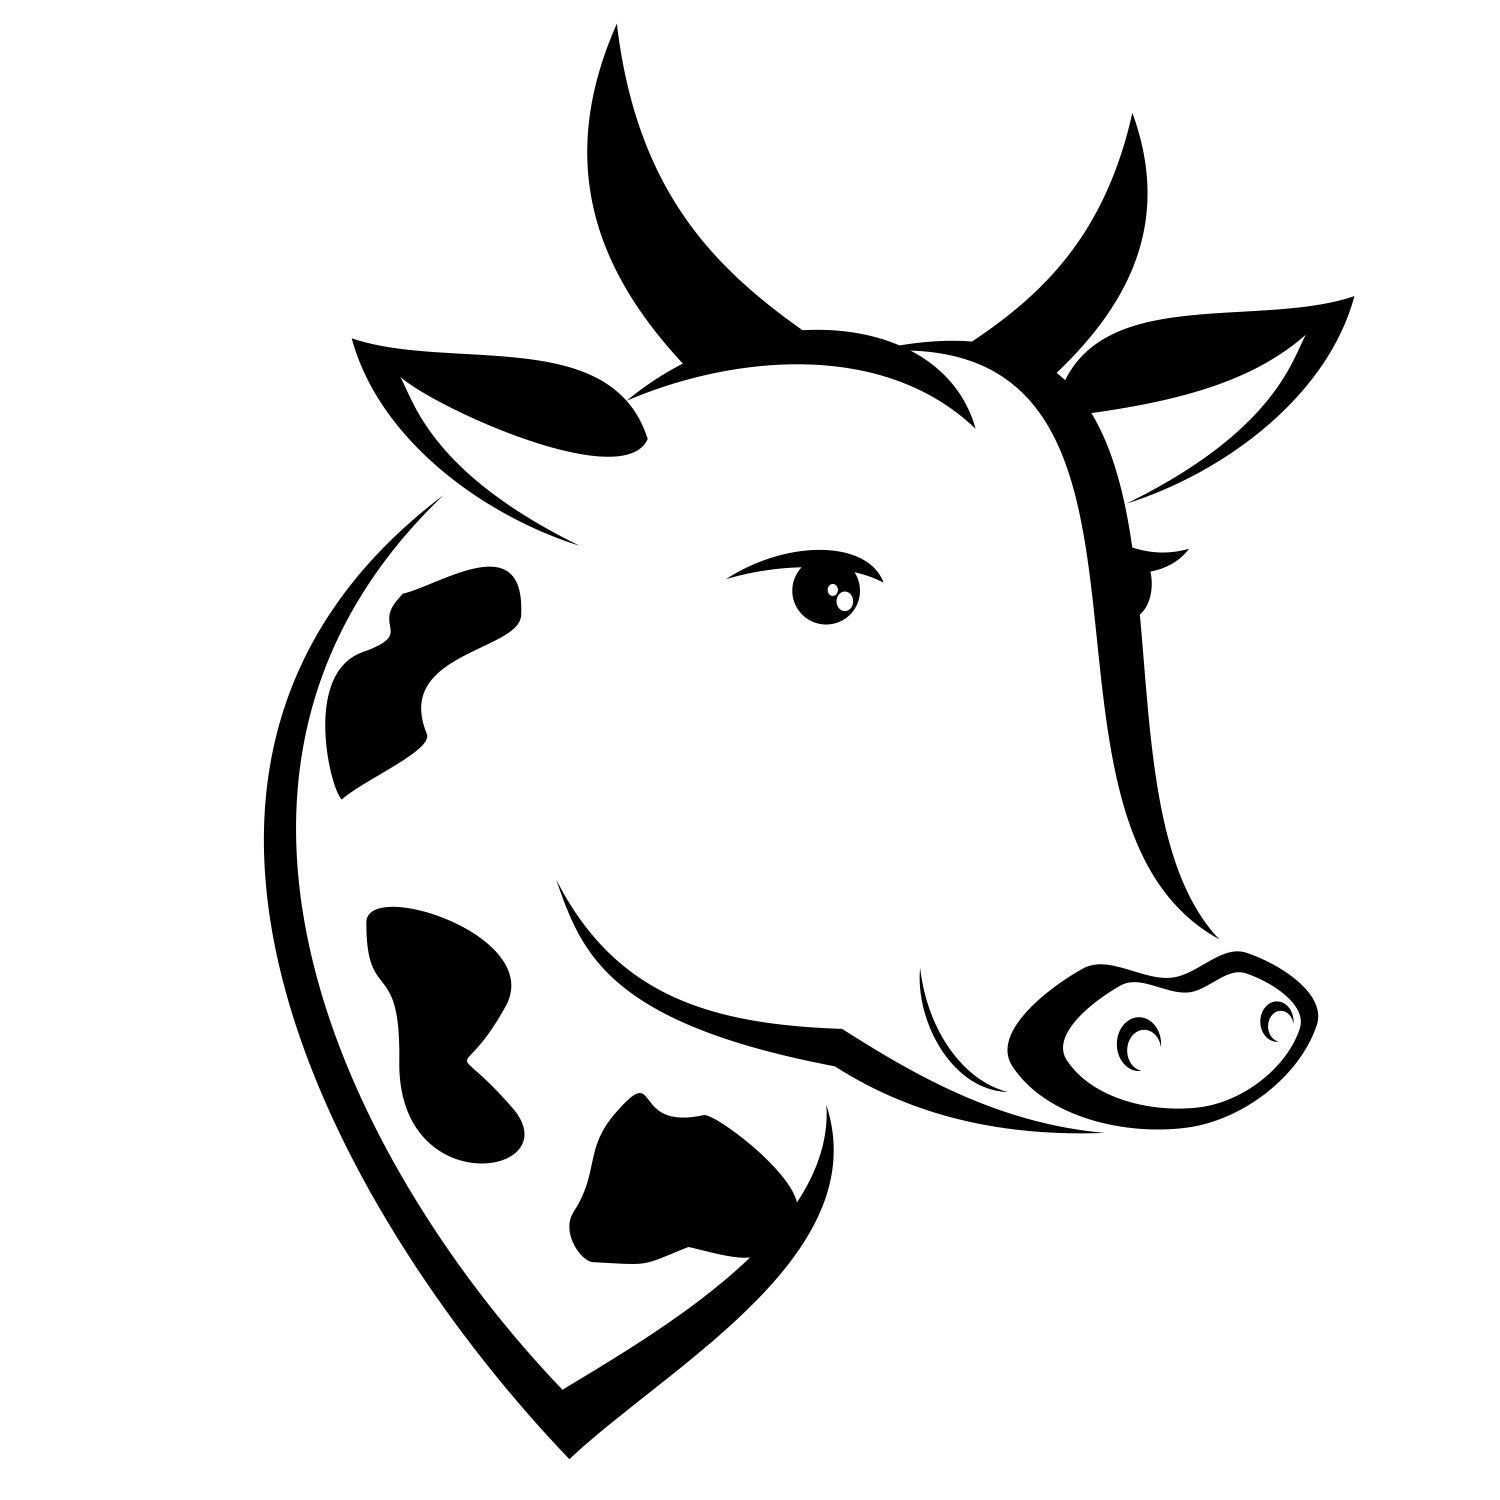 Vector Cowu0027S Head   Png Cow Head - Cow Head, Transparent background PNG HD thumbnail